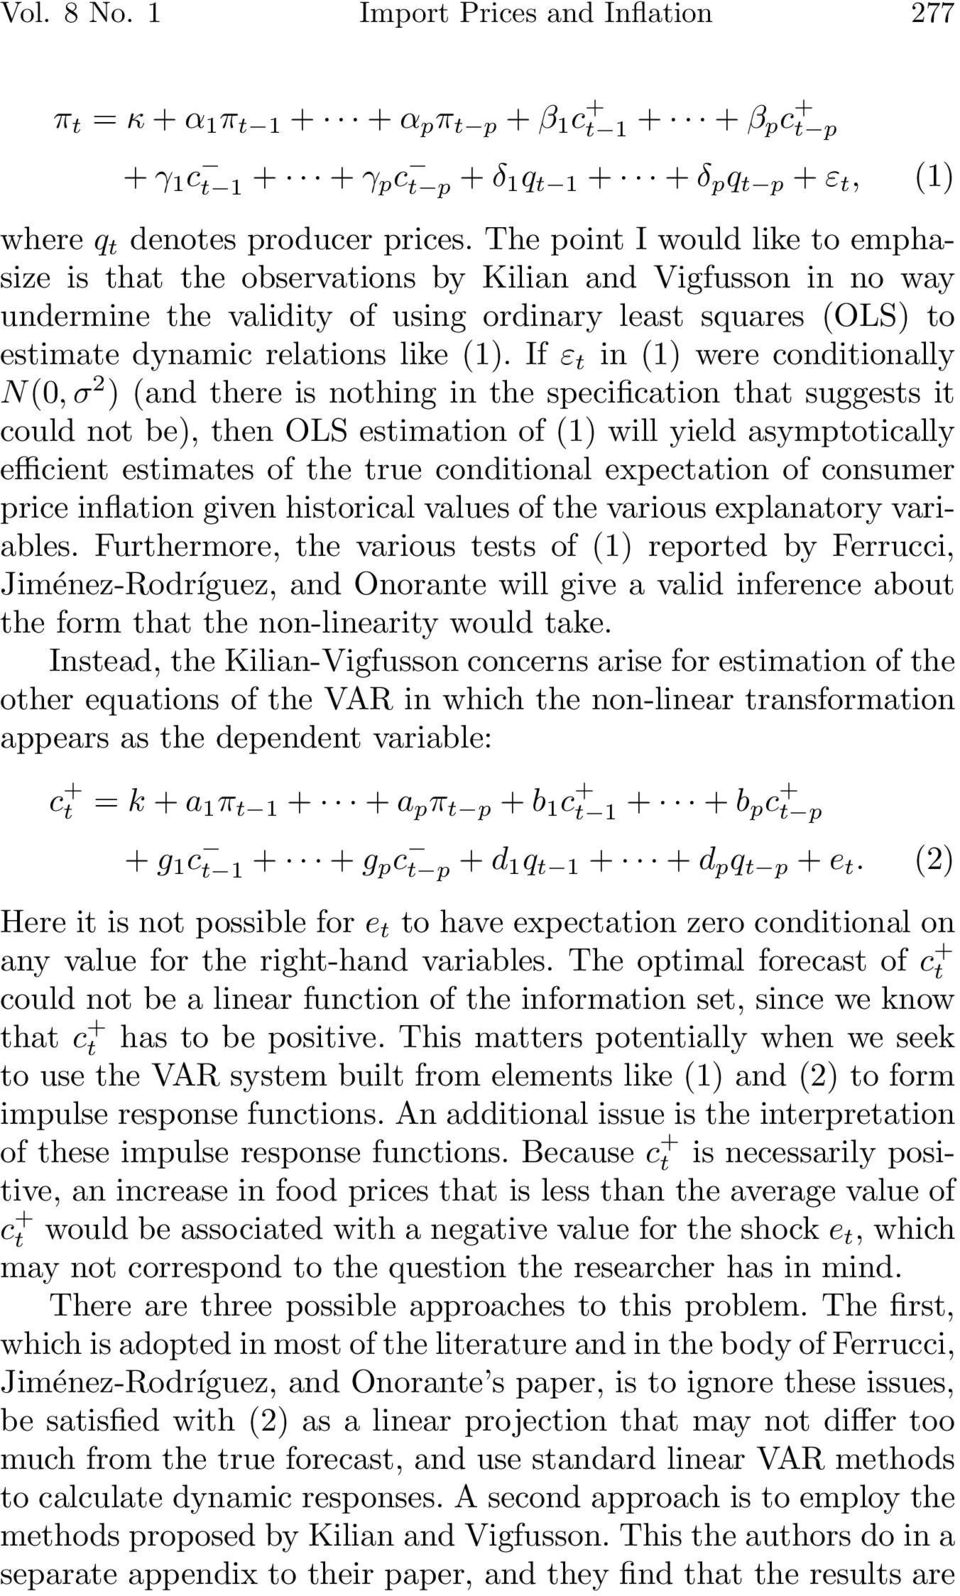 The point I would like to emphasize is that the observations by Kilian and Vigfusson in no way undermine the validity of using ordinary least squares (OLS) to estimate dynamic relations like (1).